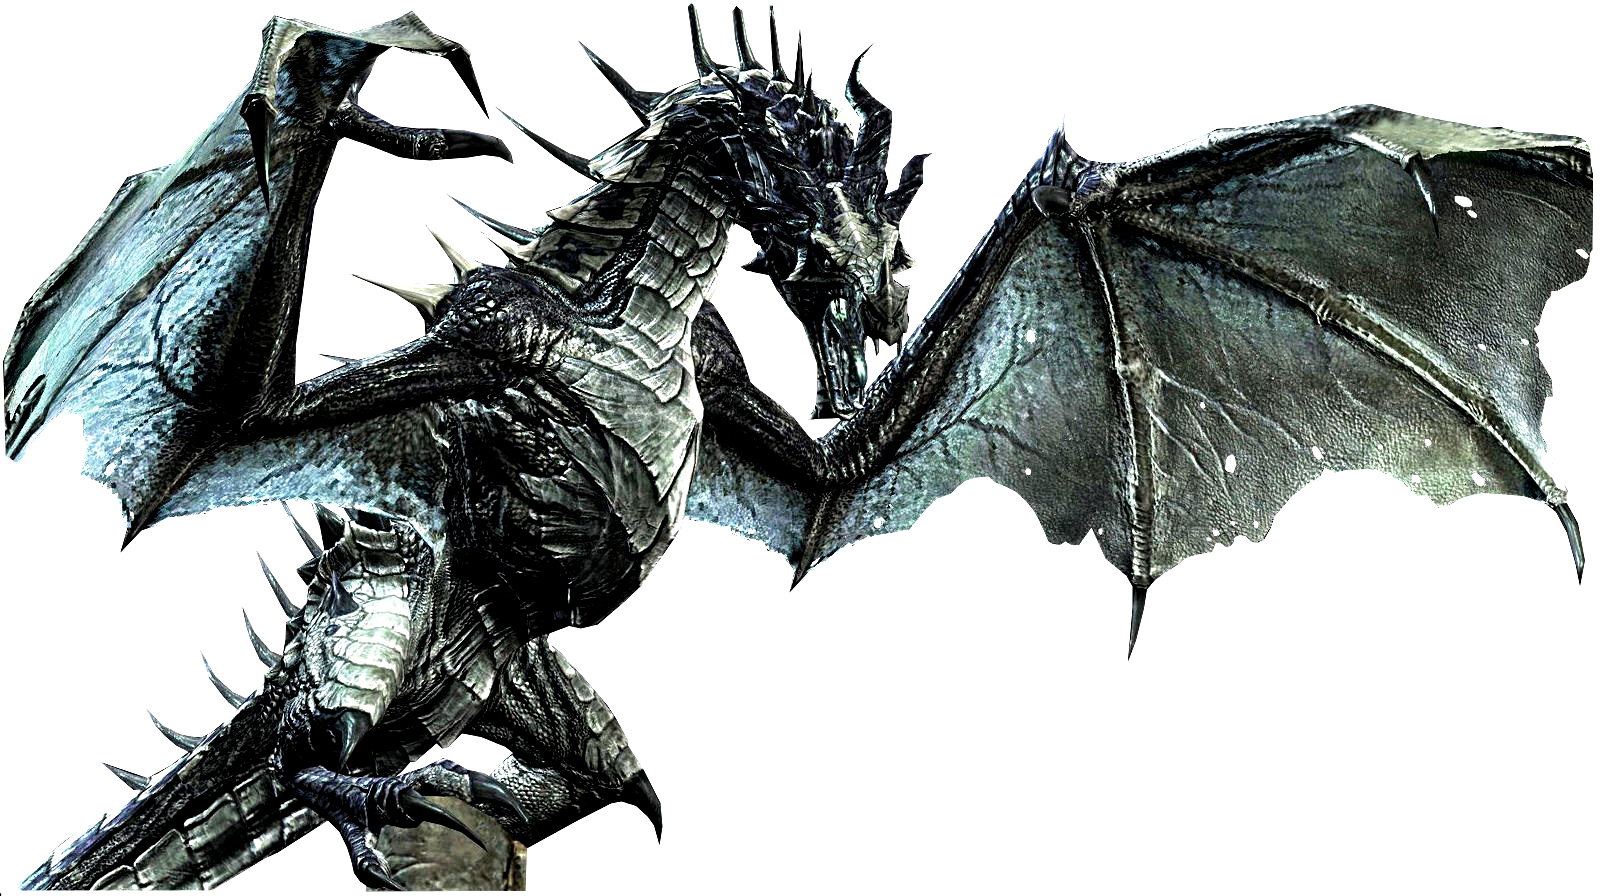 Skyrim Dragon: Why Can't We Have A 6 Limbed Dragon In Movies